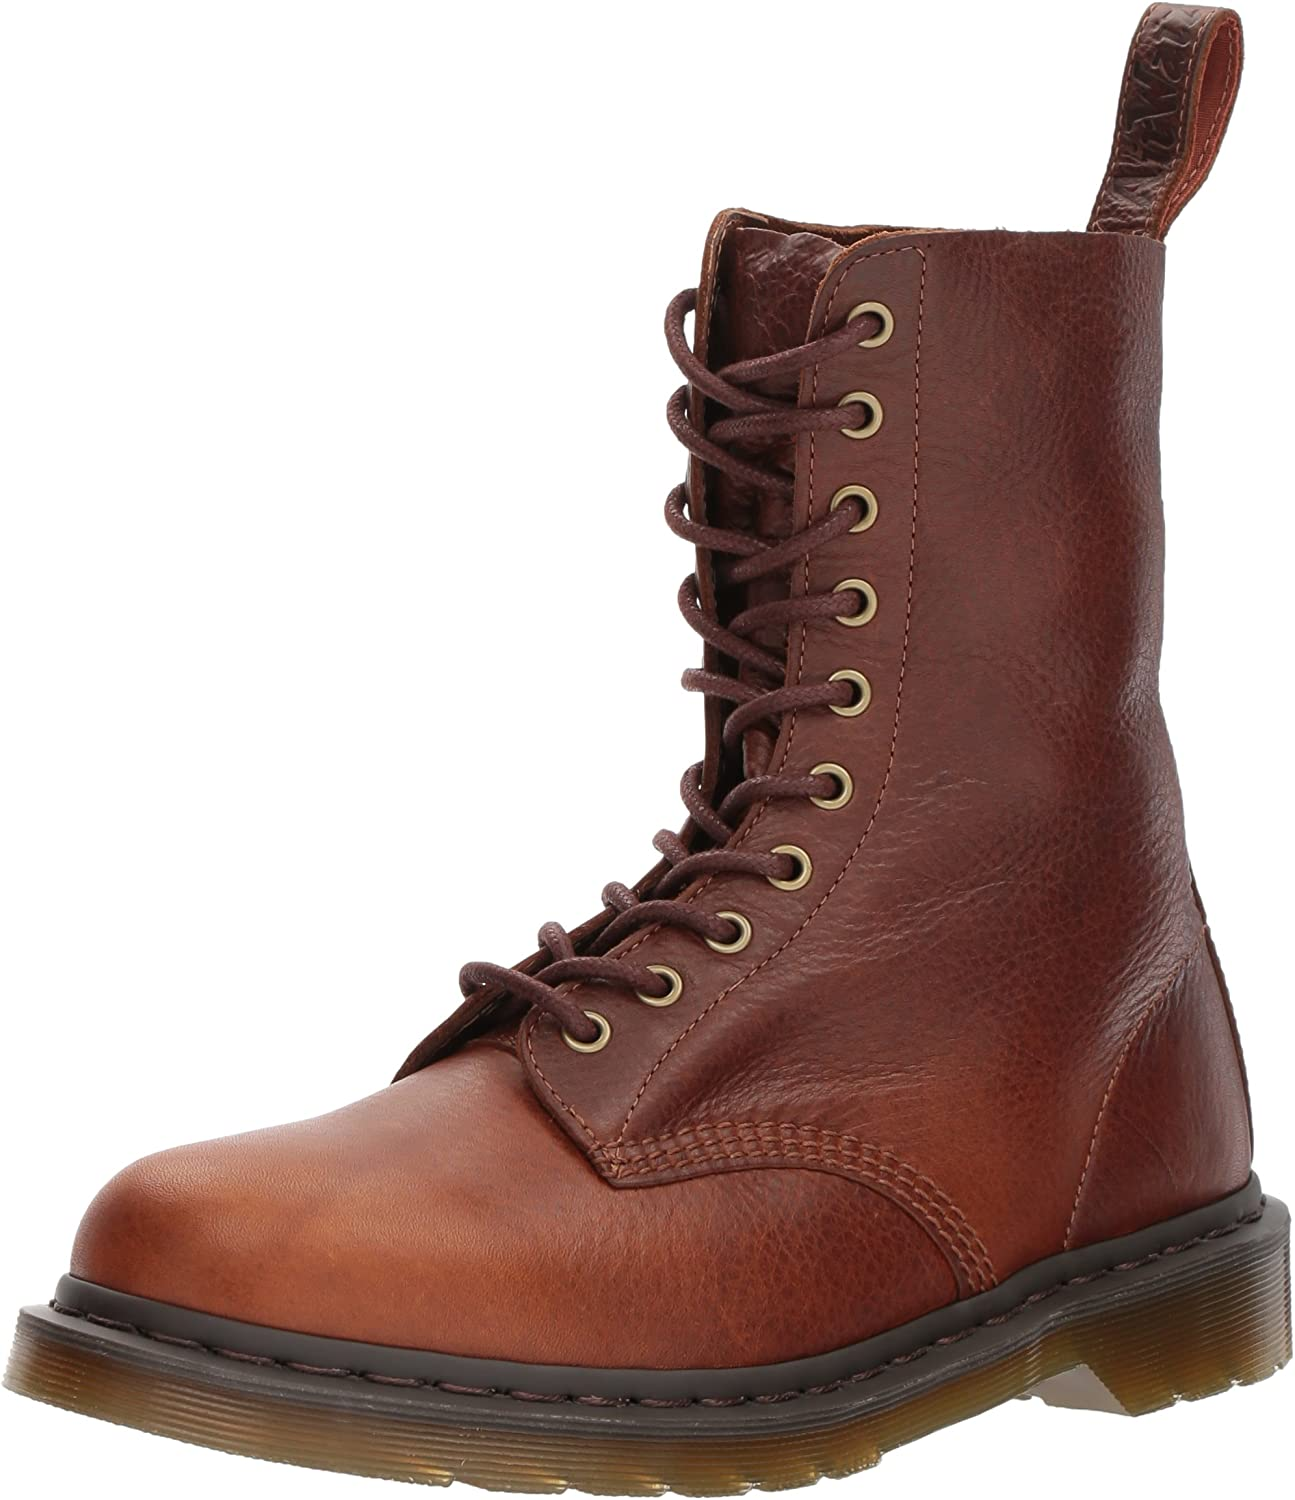 Dr. Martens 1490 Tan Harvest Leather Fashion Boot